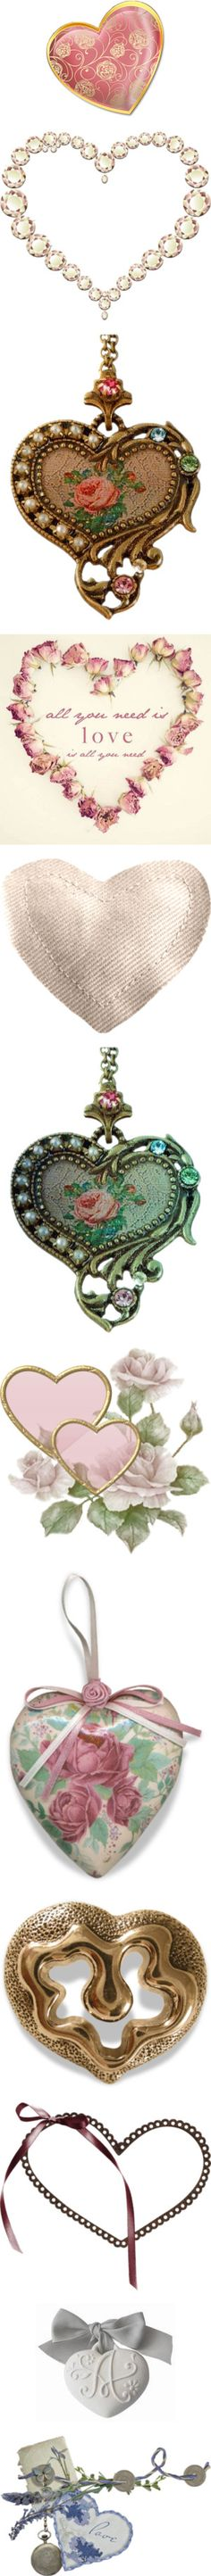 """""""Hearts Of All Kinds"""" by jewelsinthecrown ❤ liked on Polyvore"""